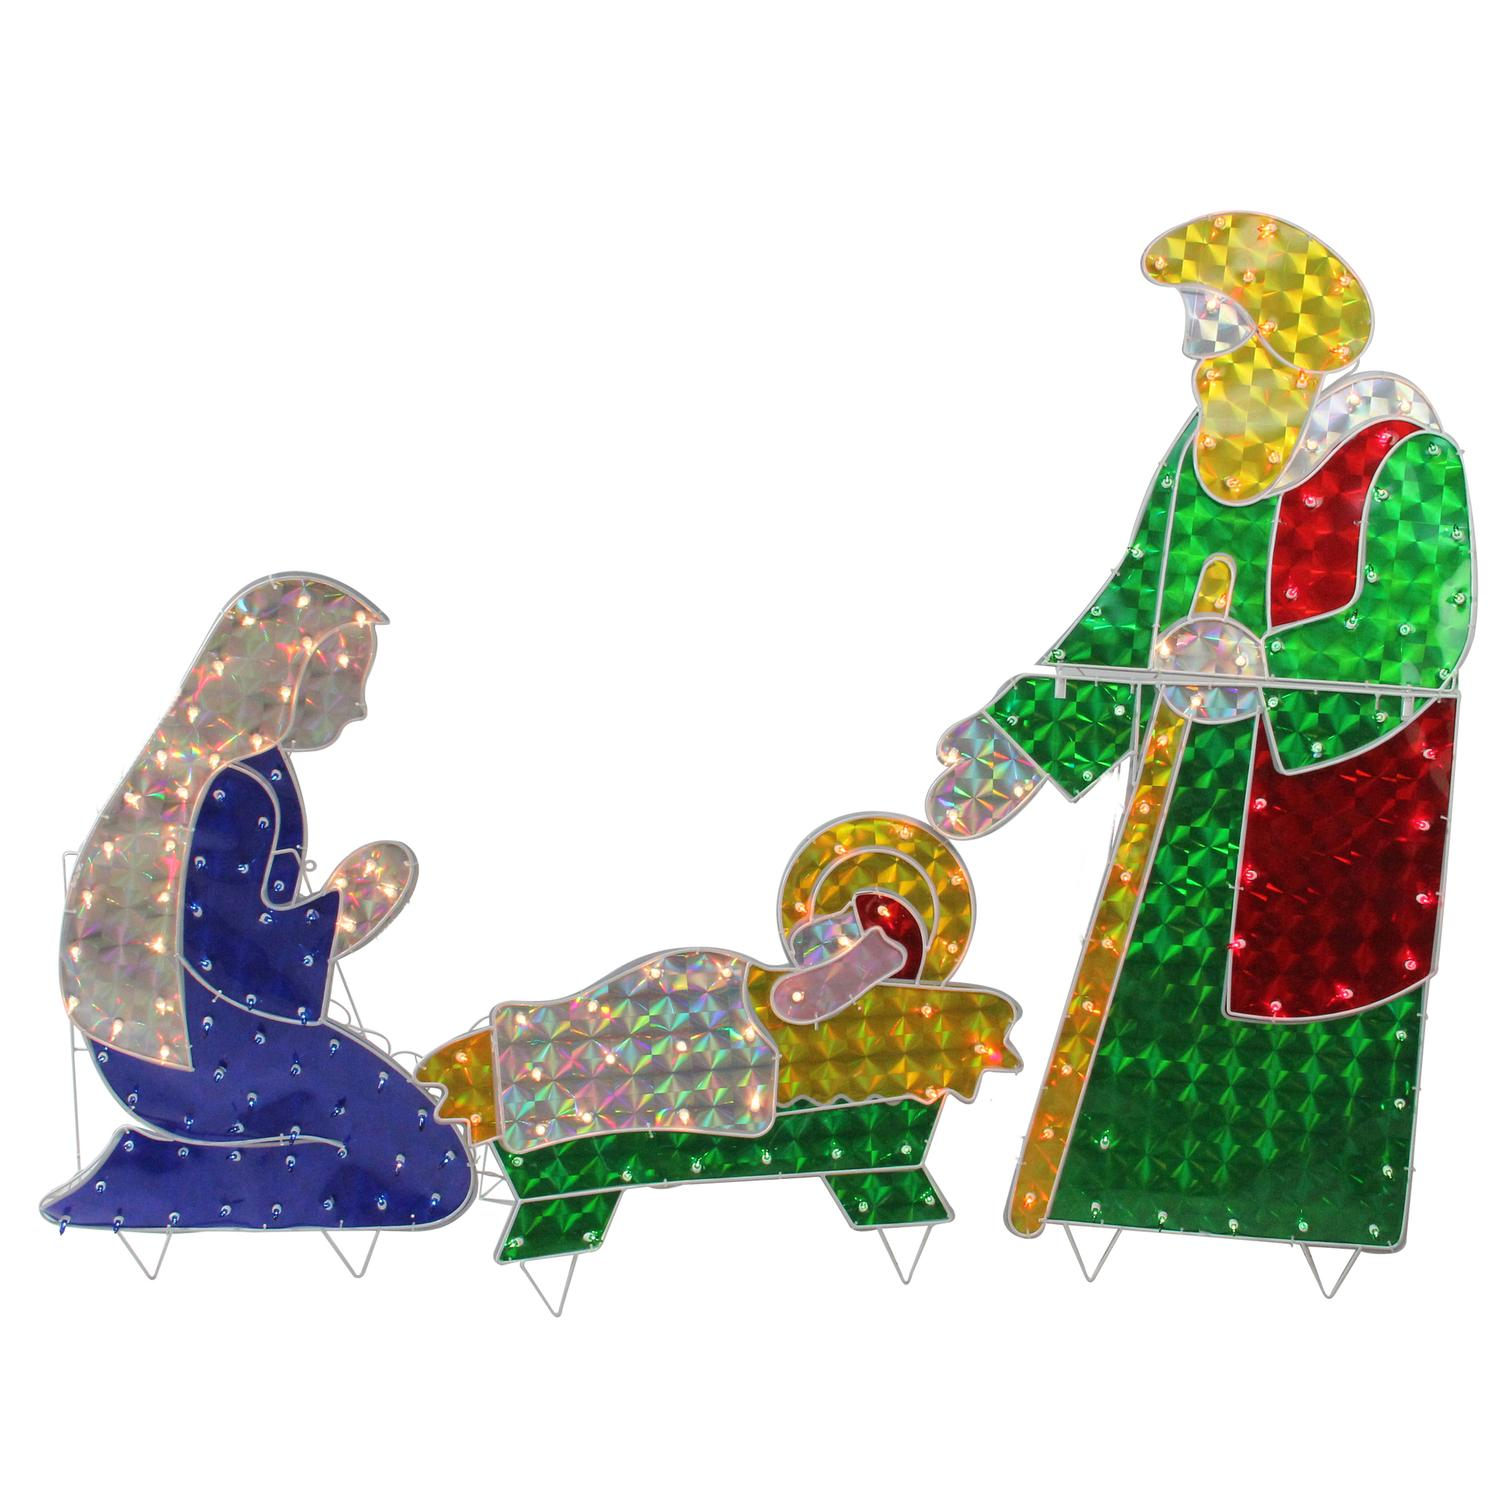 3-Piece Holographic Lighted Christmas Nativity Set Outdoor Decoration 42